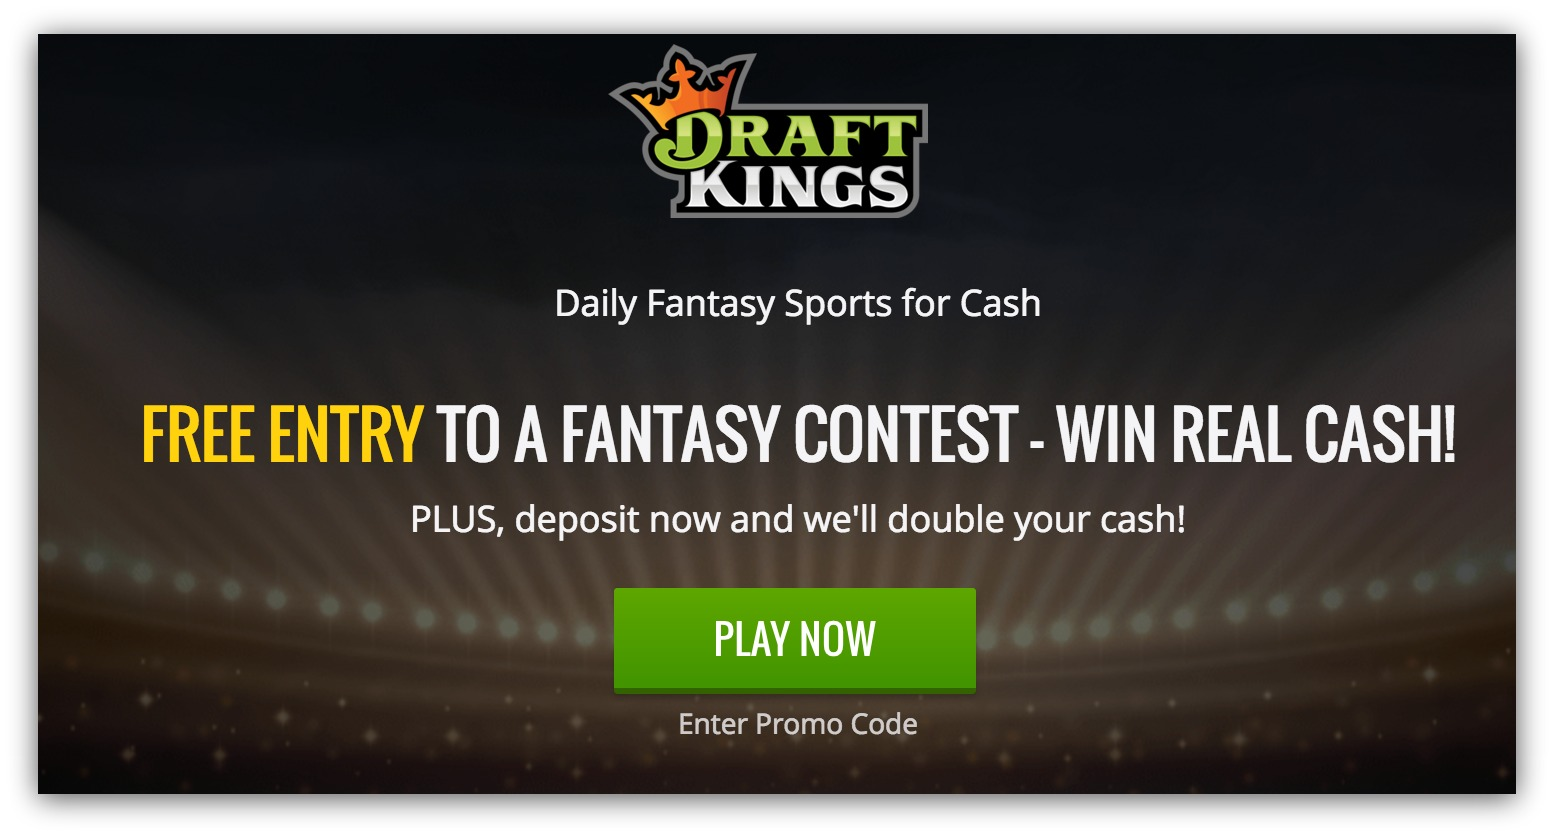 Screenshot showing an incentive offered by DraftKings